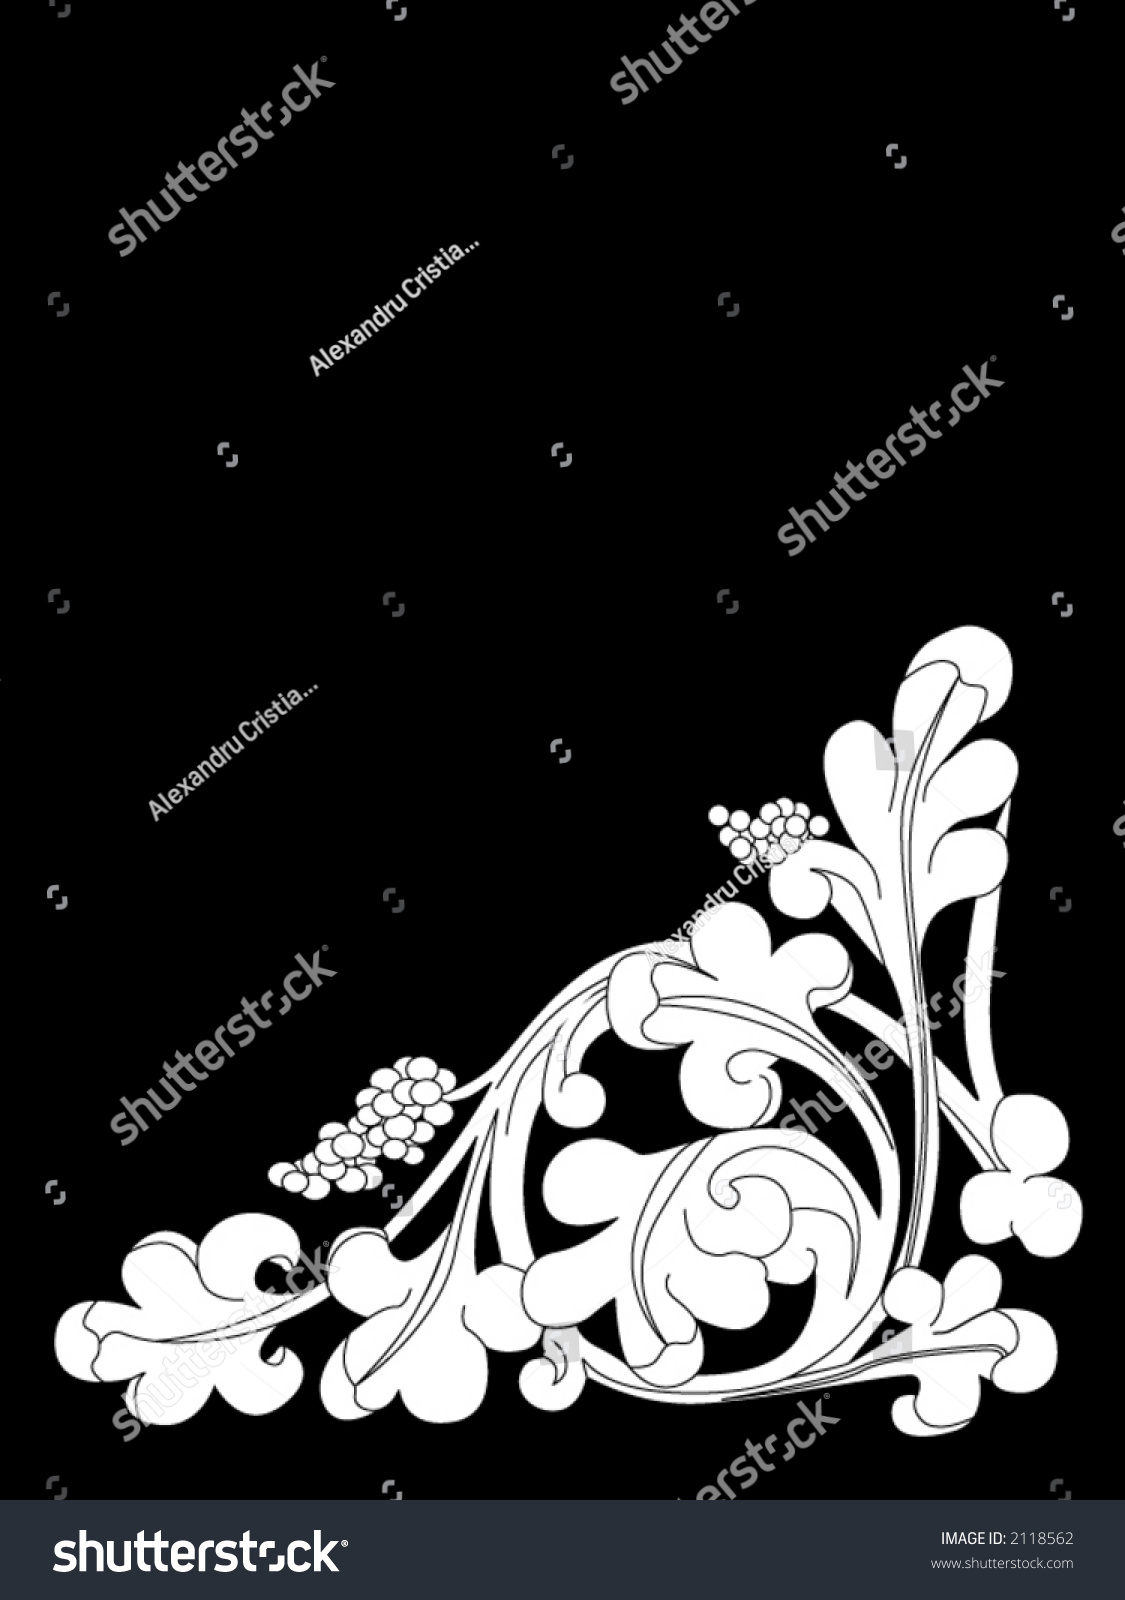 Vector gothic carving design element 2118562 shutterstock for Gothic design elements